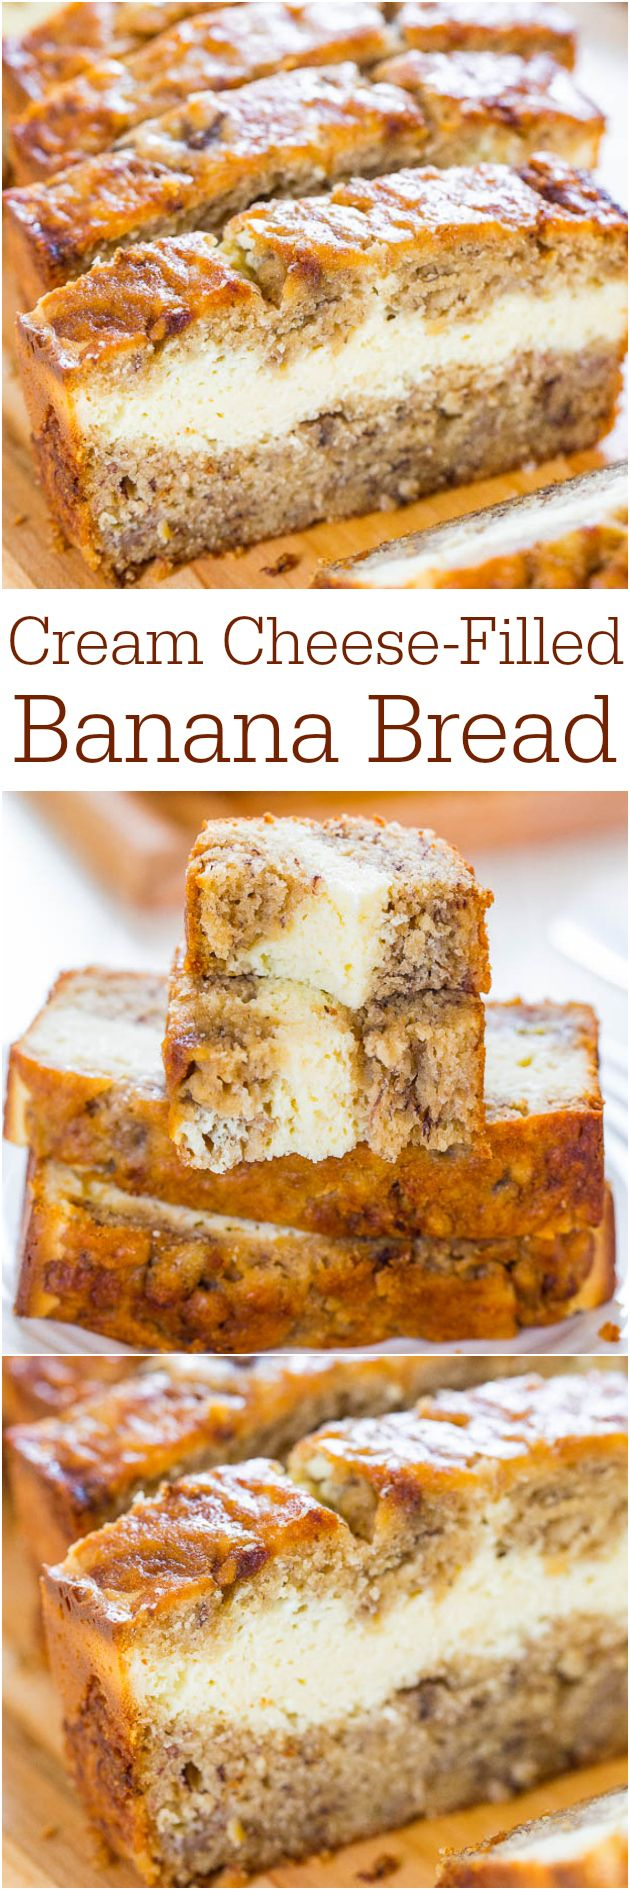 Cream Cheese-Filled Banana Bread - Banana bread that's like having cheesecake baked in! Soft, fluffy, easy and tastes ahhhh-mazing!  CLICK THE PHOTO TO VISIT THE RECIPE!!